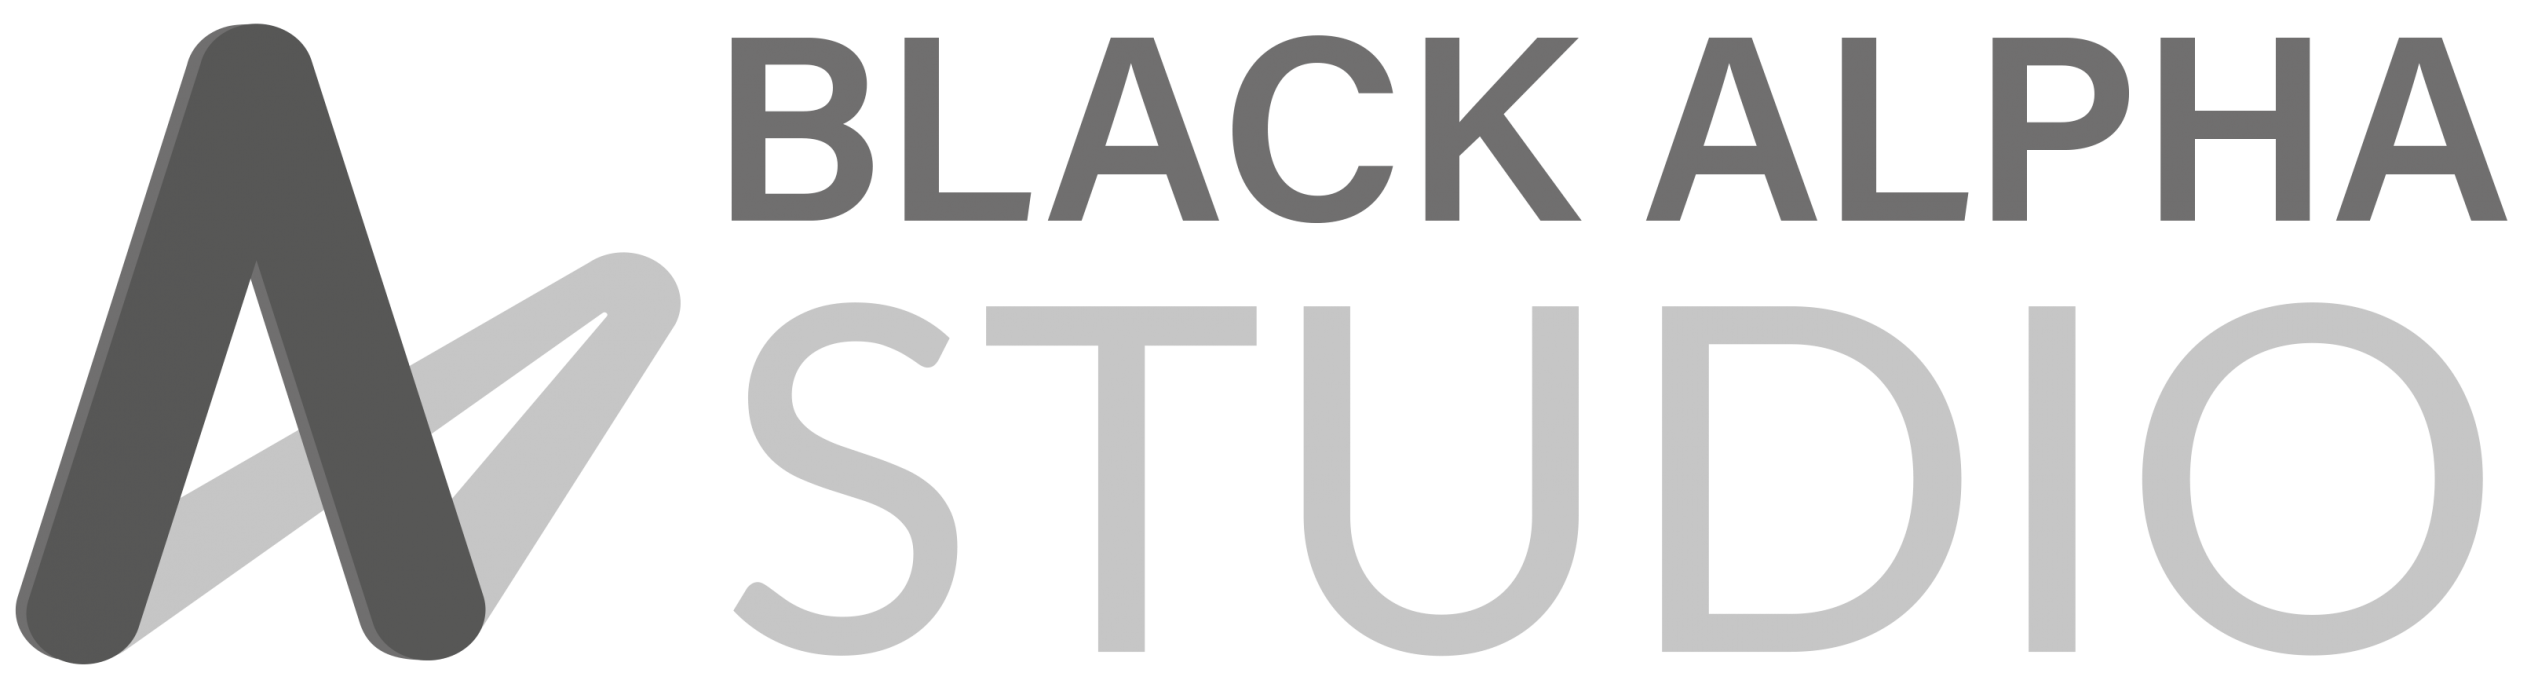 Black Alpha Studio